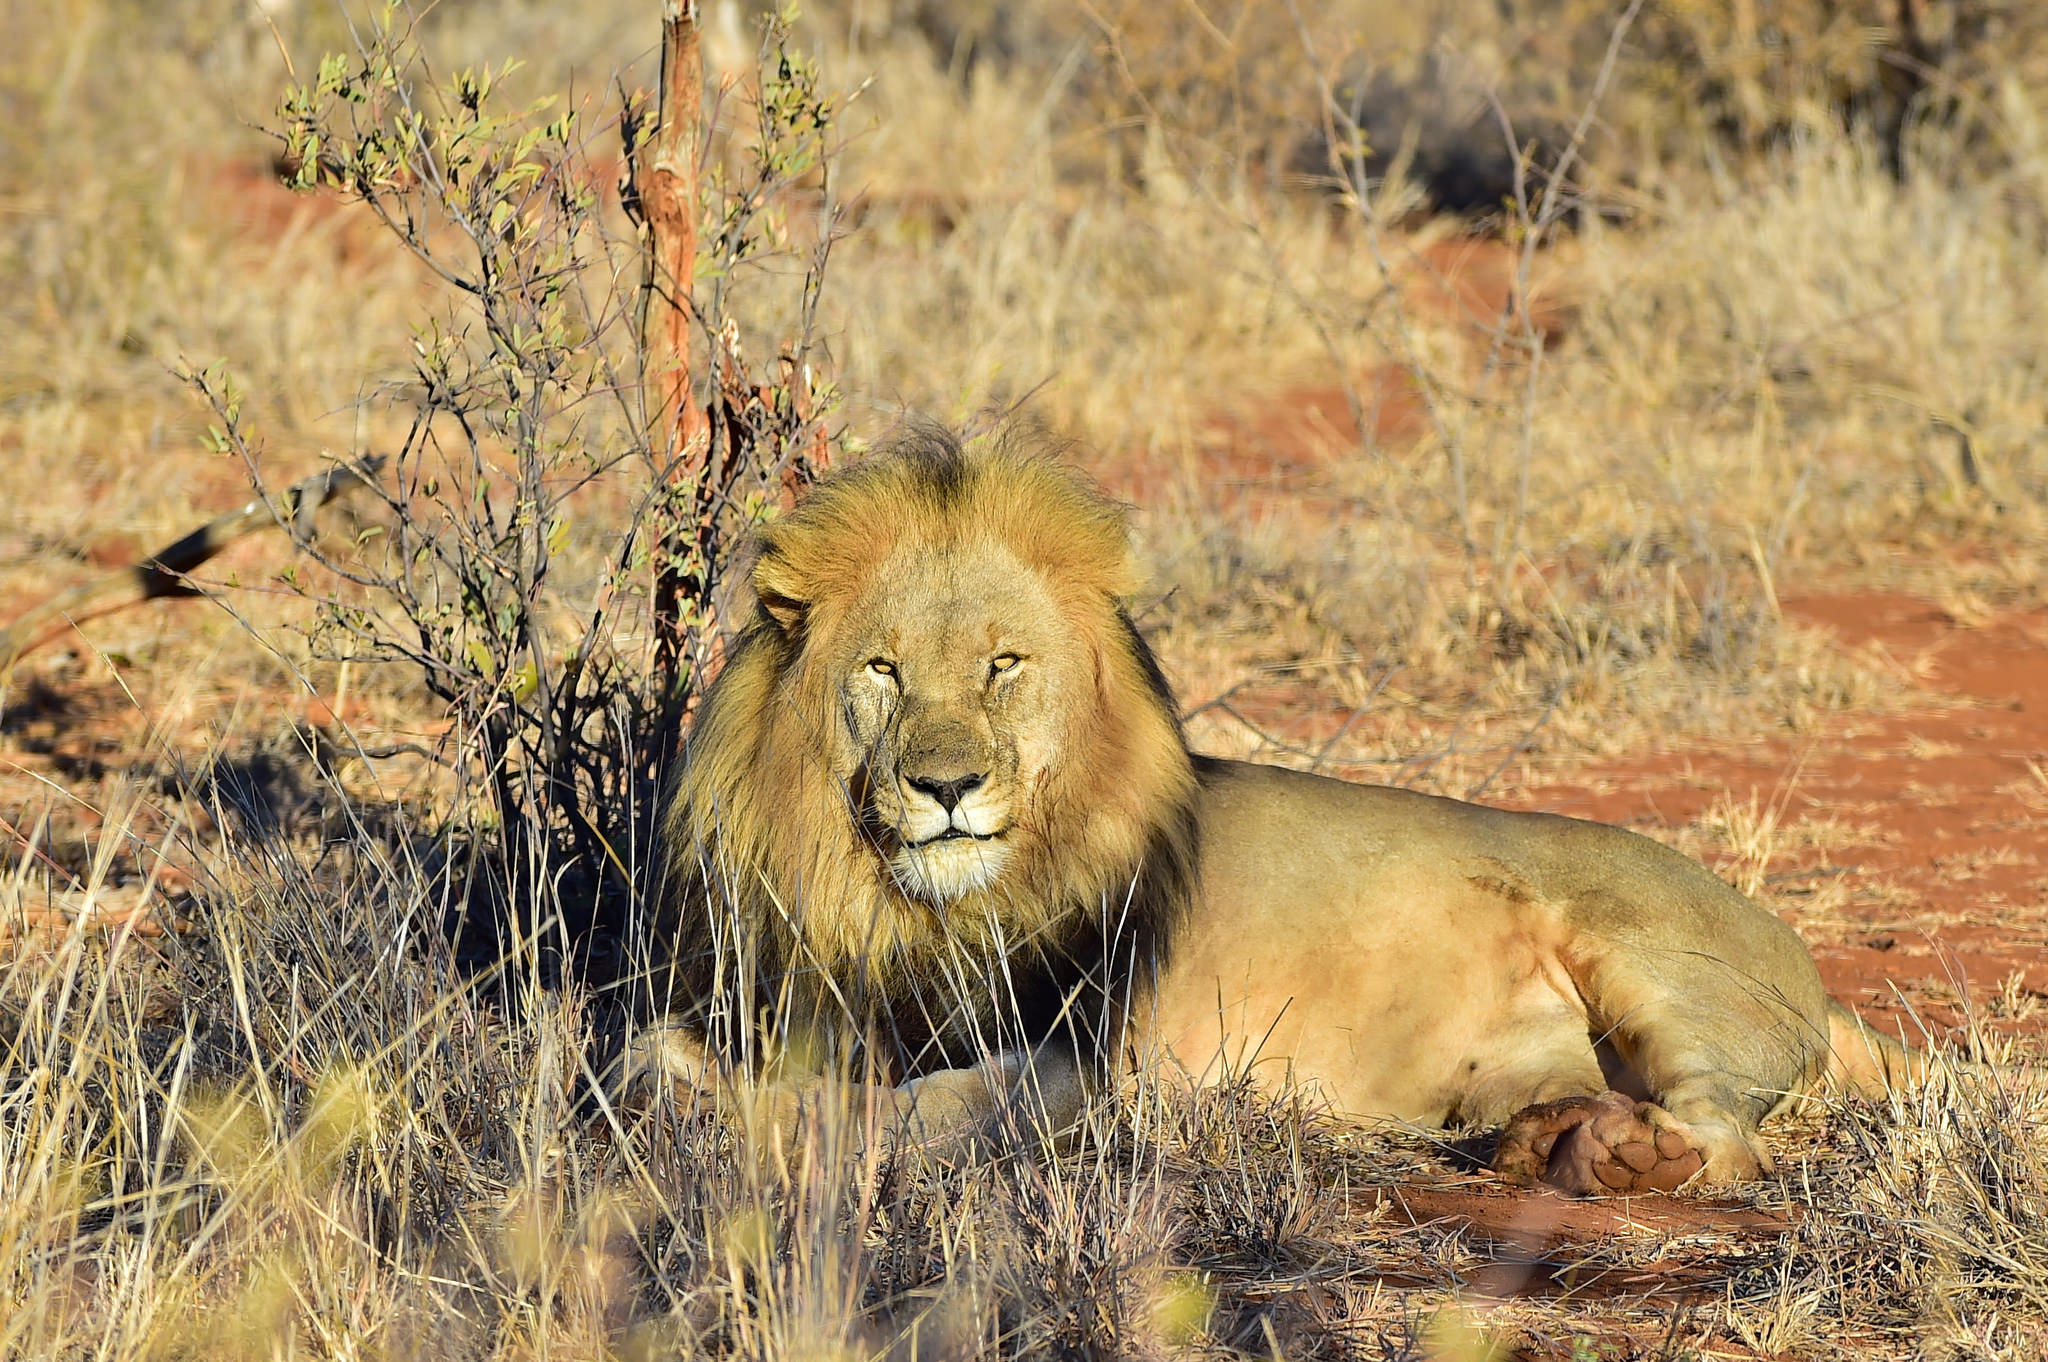 New study suggests half of lion populations will be lost in key regions of Africa